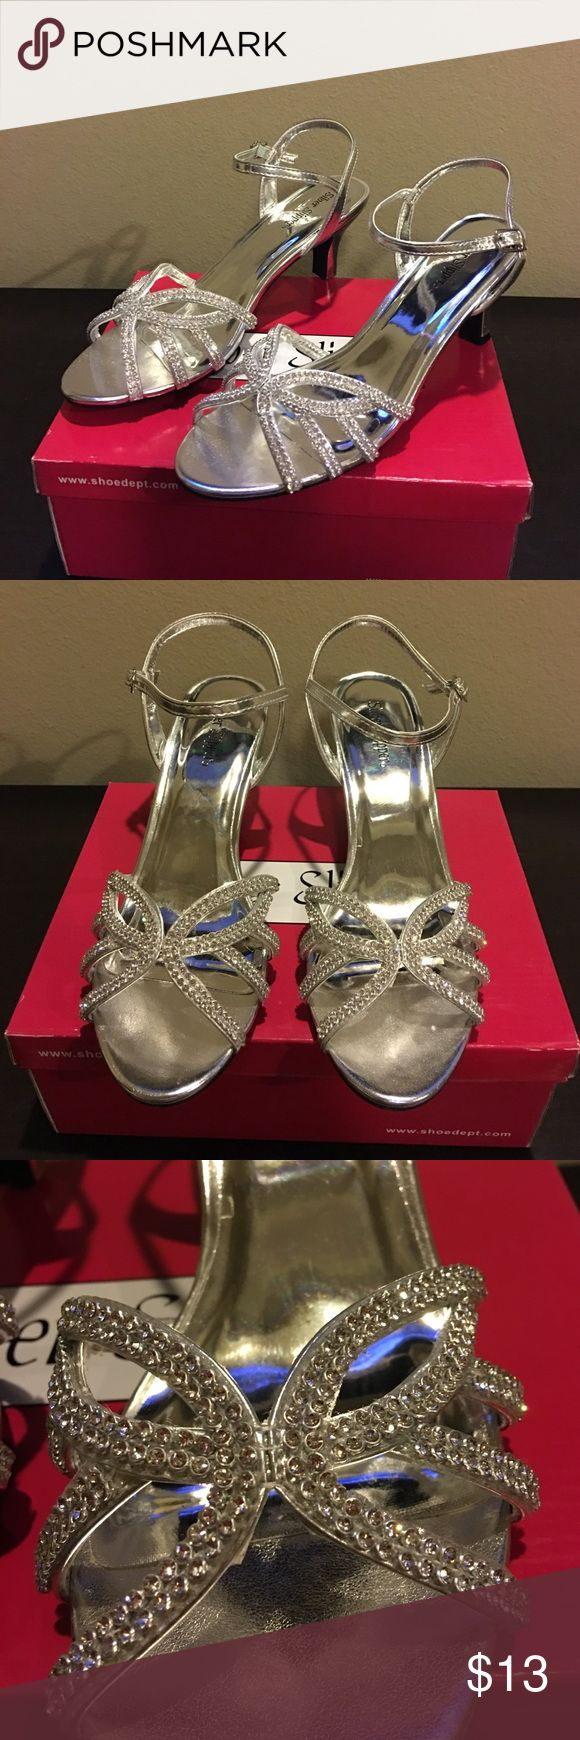 New Silver Slipper silver sandals heels sz 10 New Silver Slipper silver sandals heels sz 10 brand new With defect (one heel cap needs replacing- 2 new heel caps included sold as is final price listed please no offers Silver Slipper  Shoes Heels